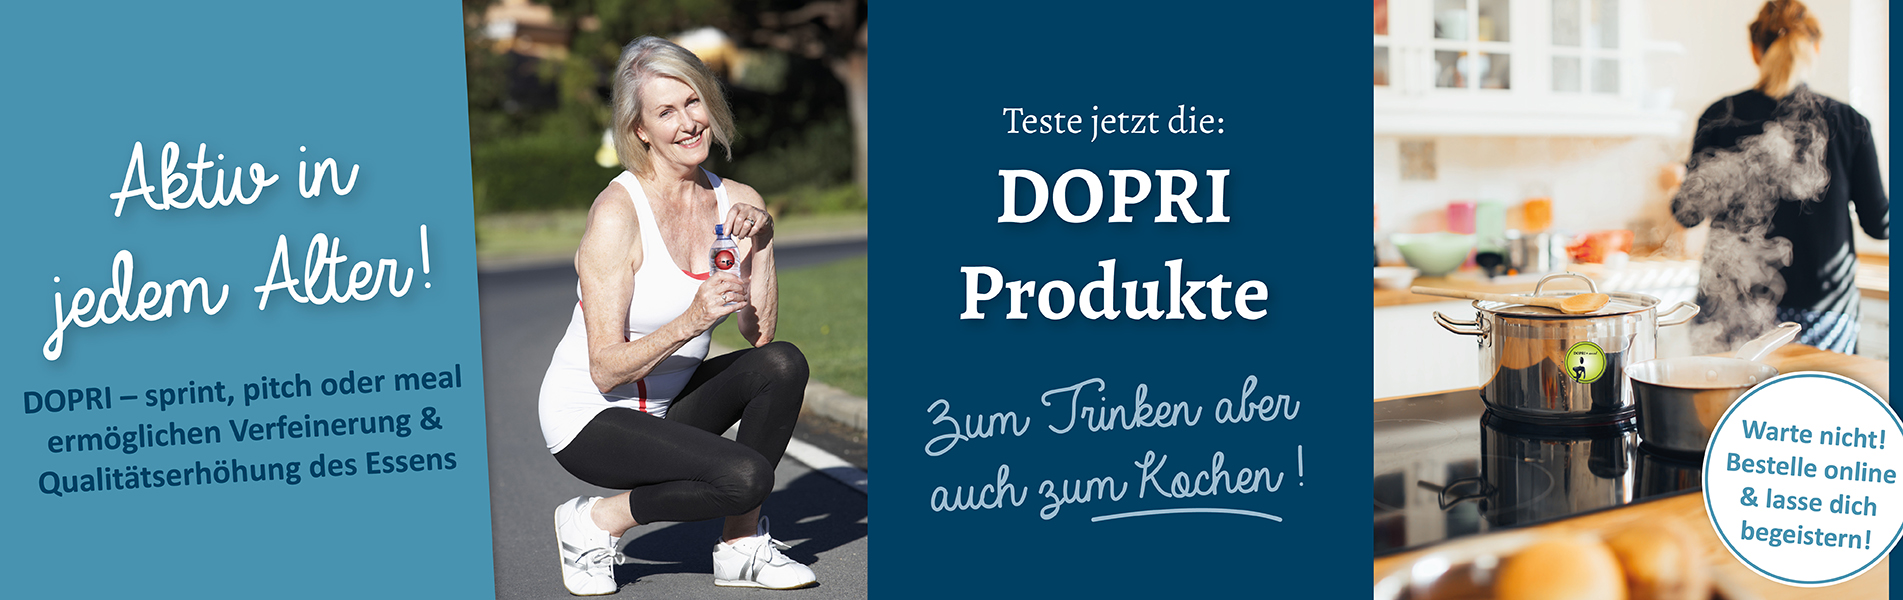 DOPRI-meal Revitalisierend